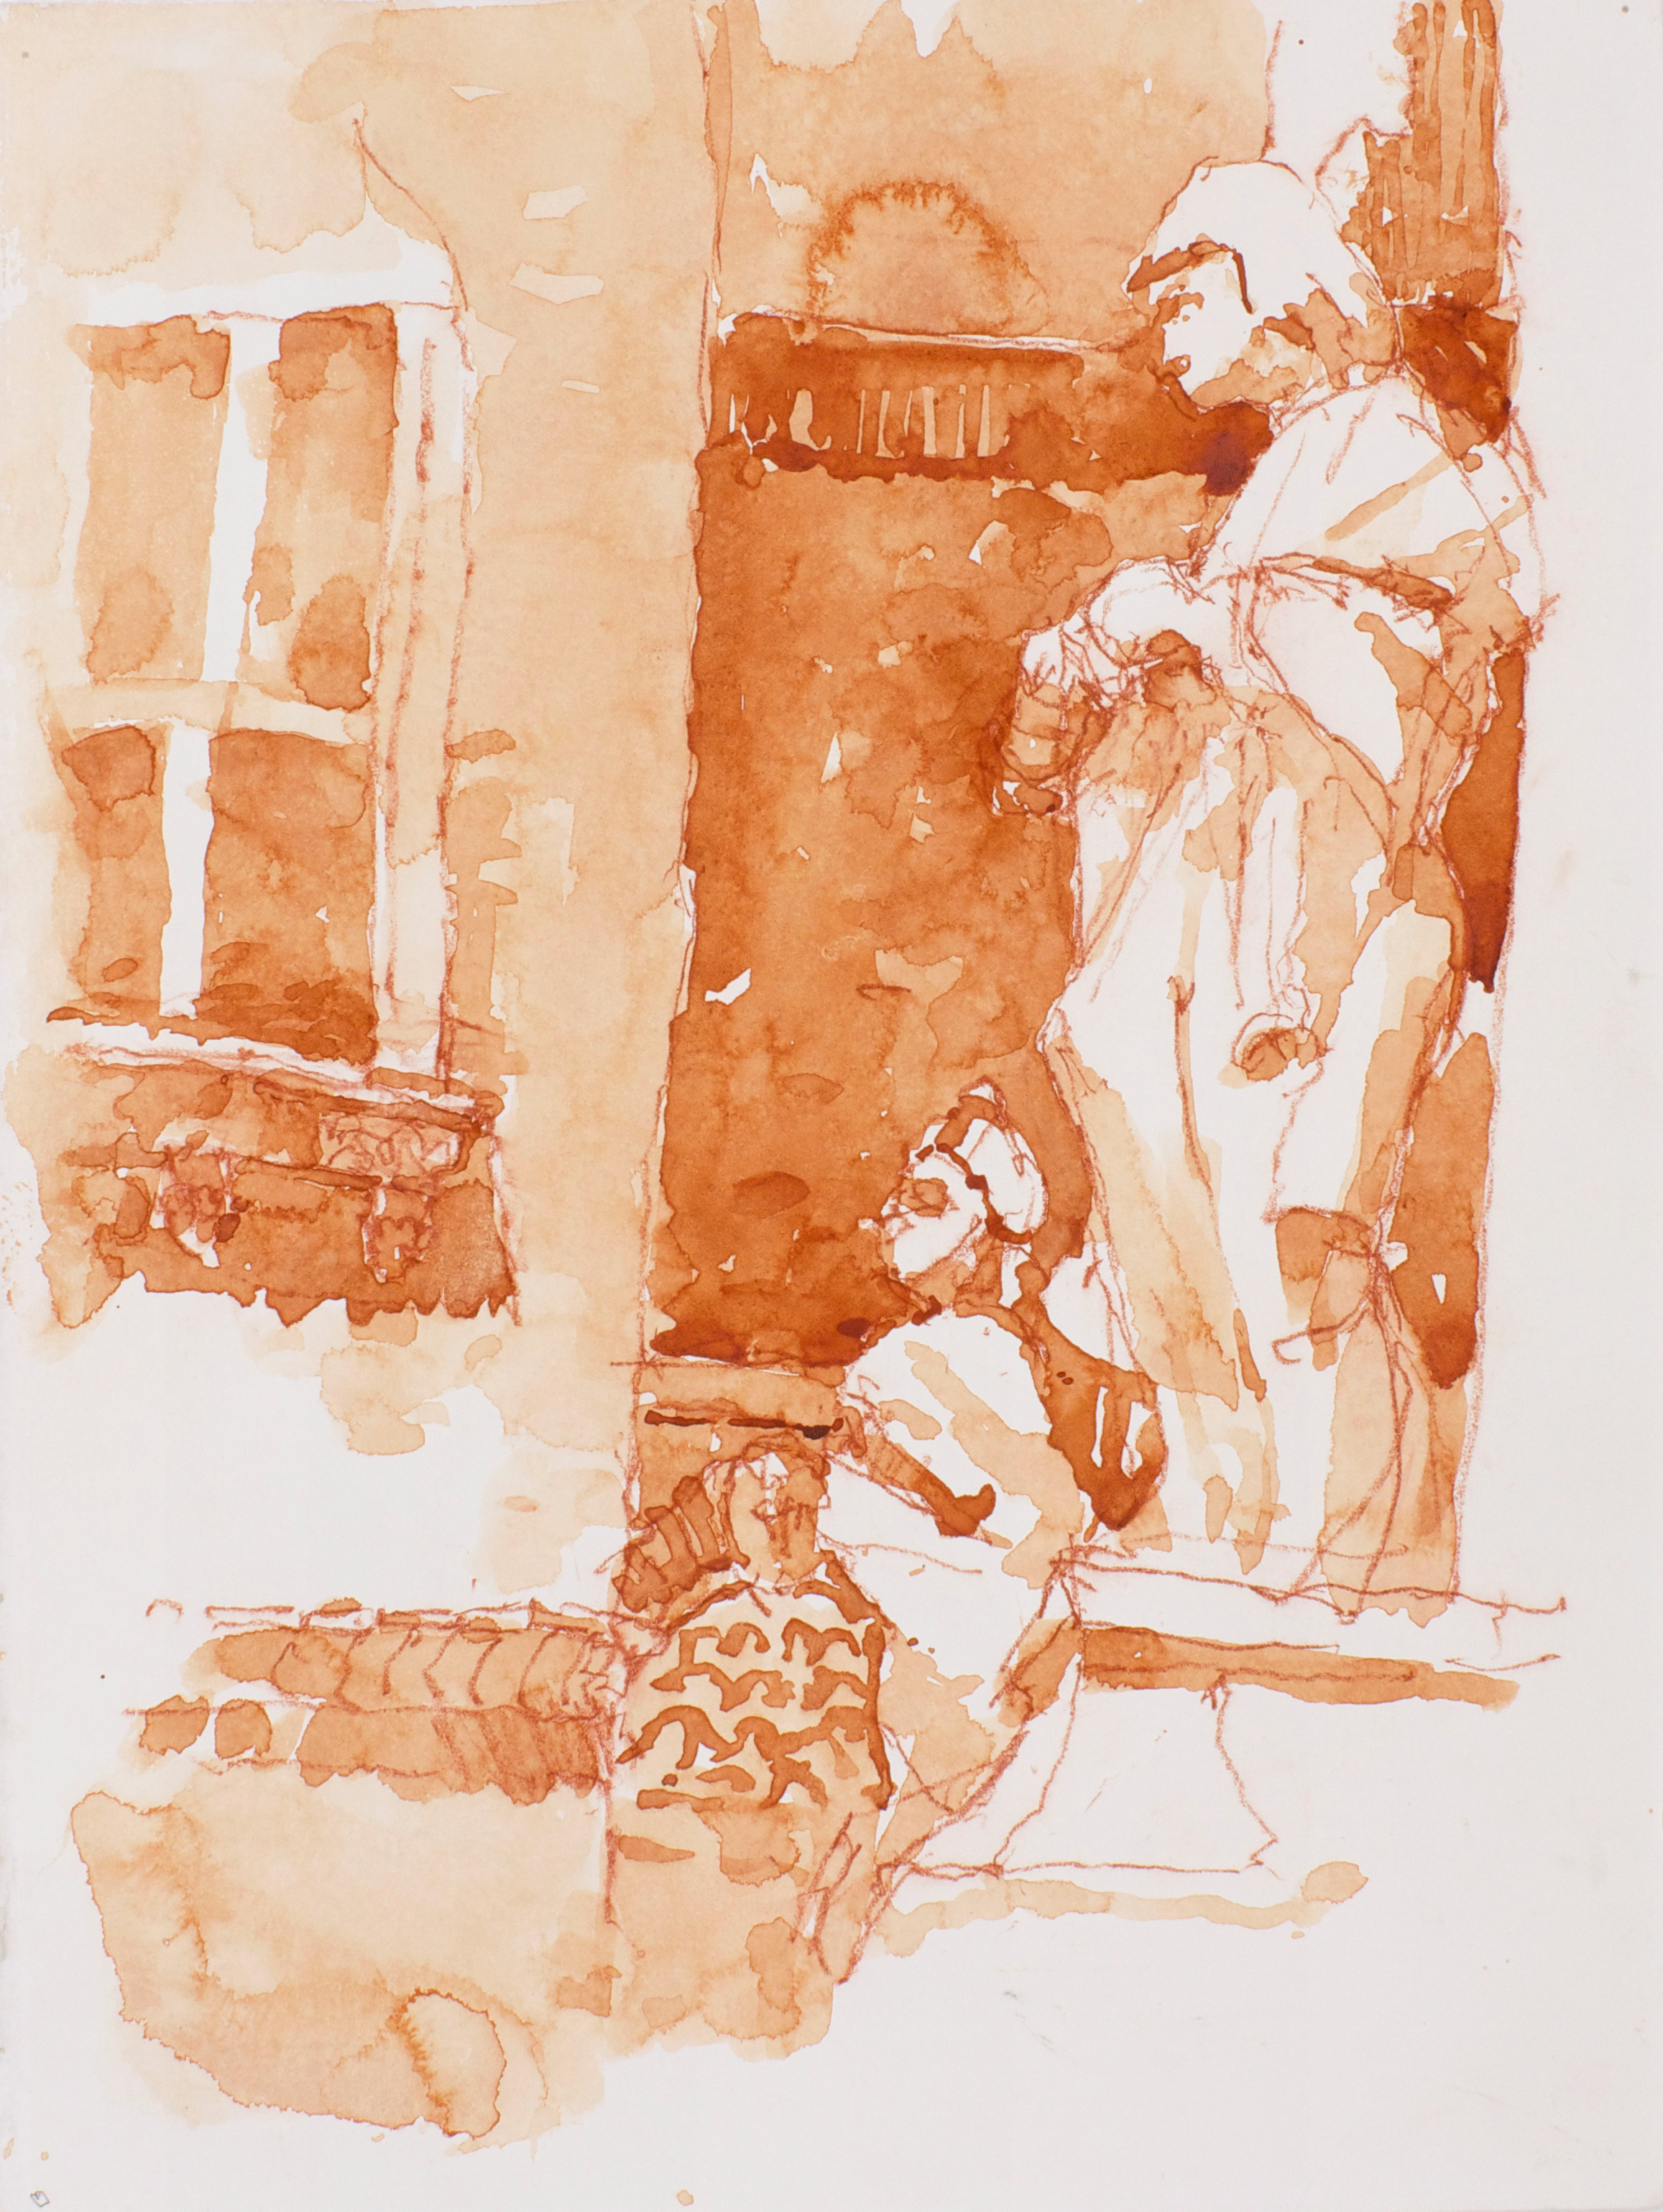 2003_Sculpture_and_Window_Venice_watercolour_and_red_conte_on_paper_15x11in_38x28cm_WPF043.jpg